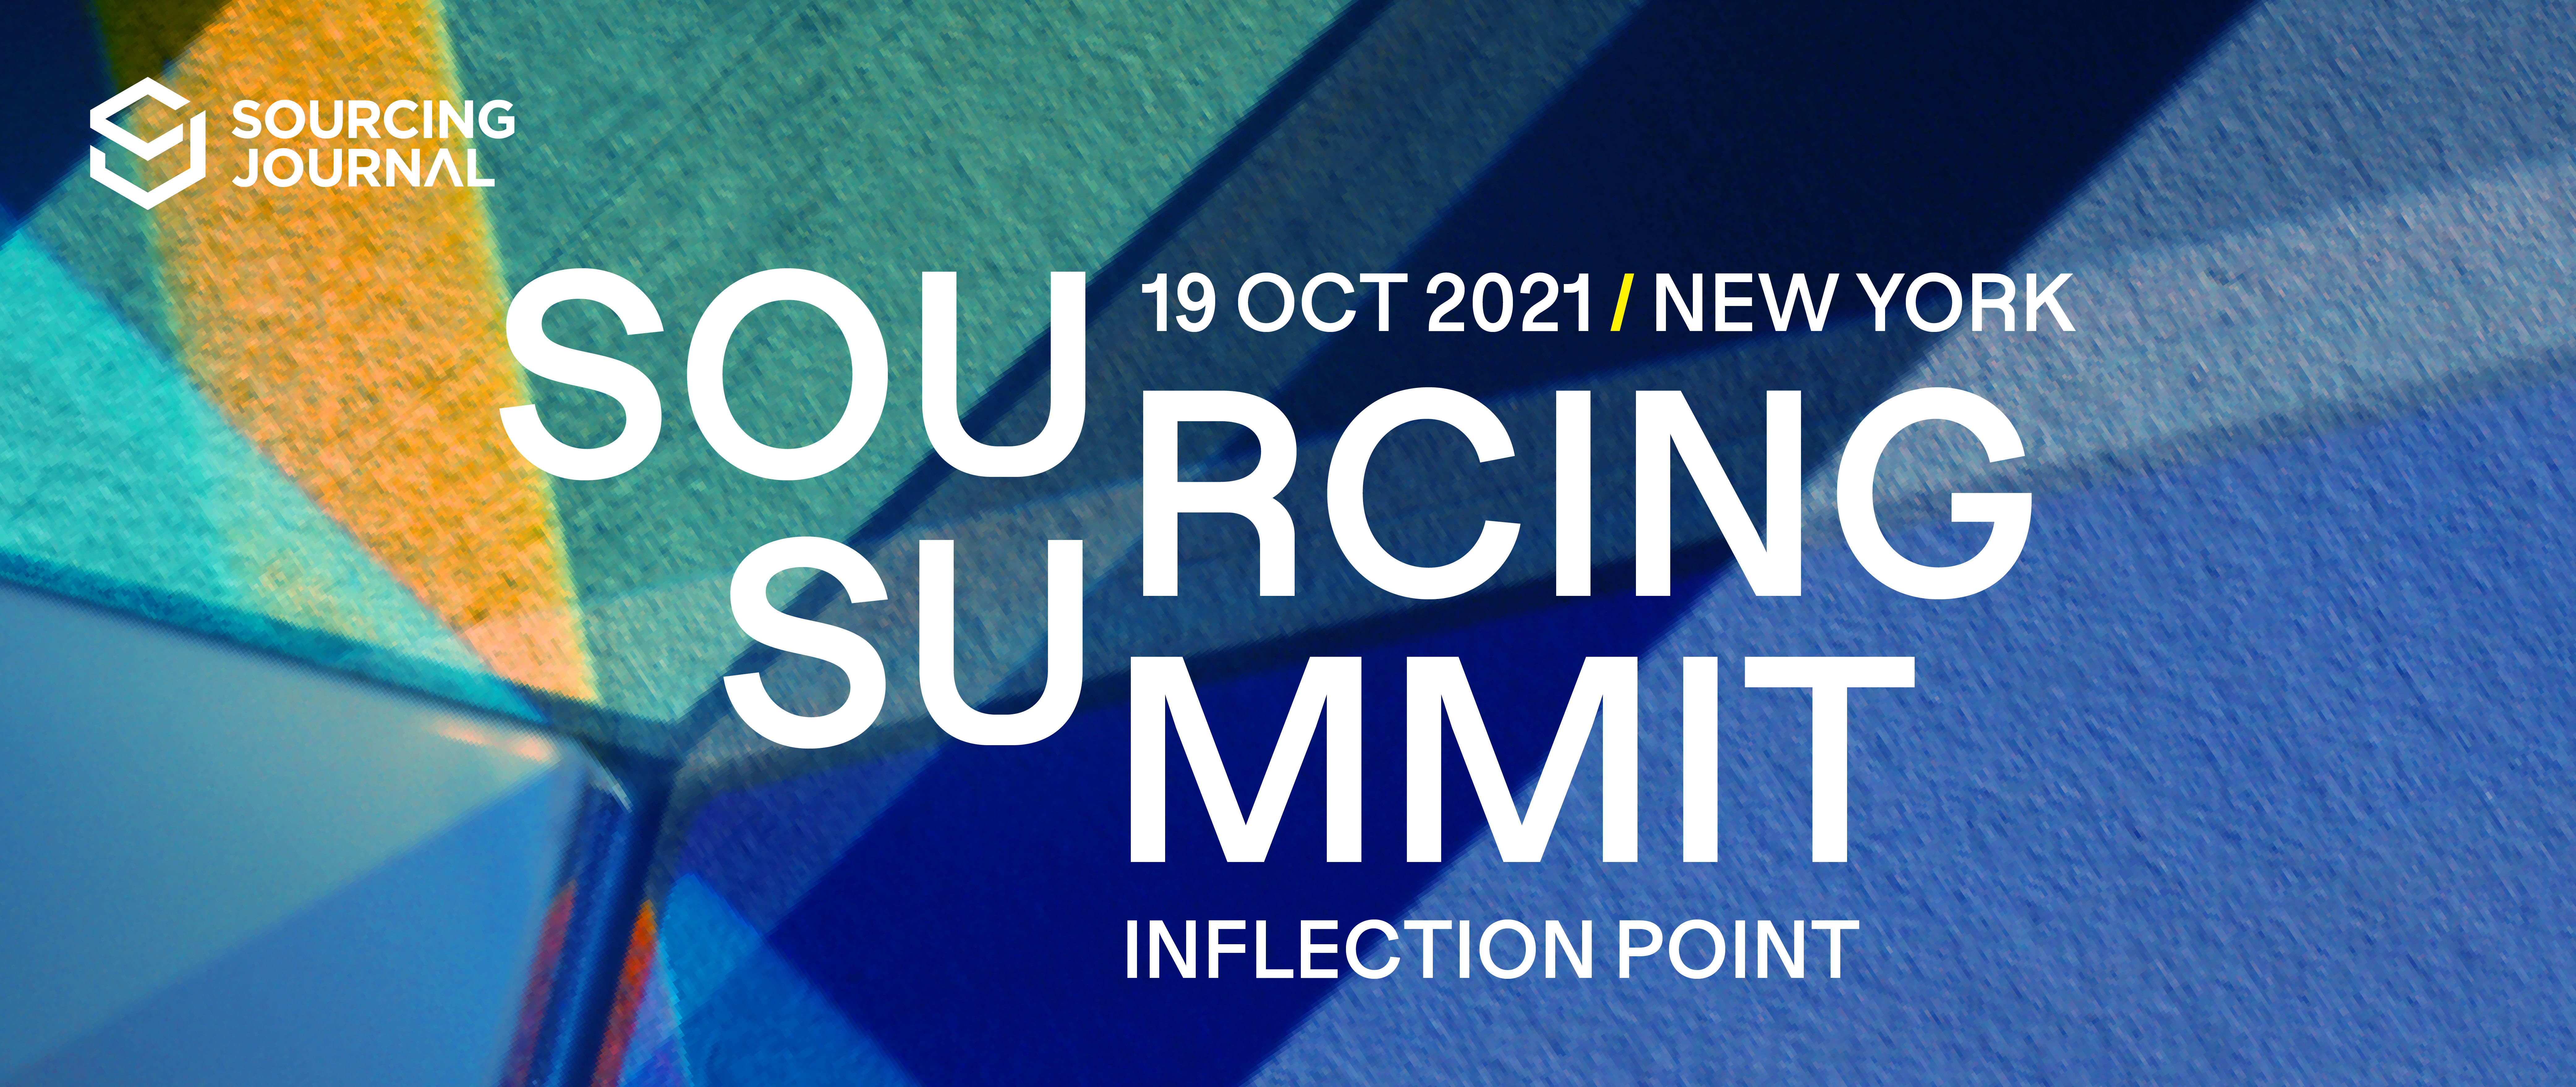 2021 Sourcing Journal Summit NY